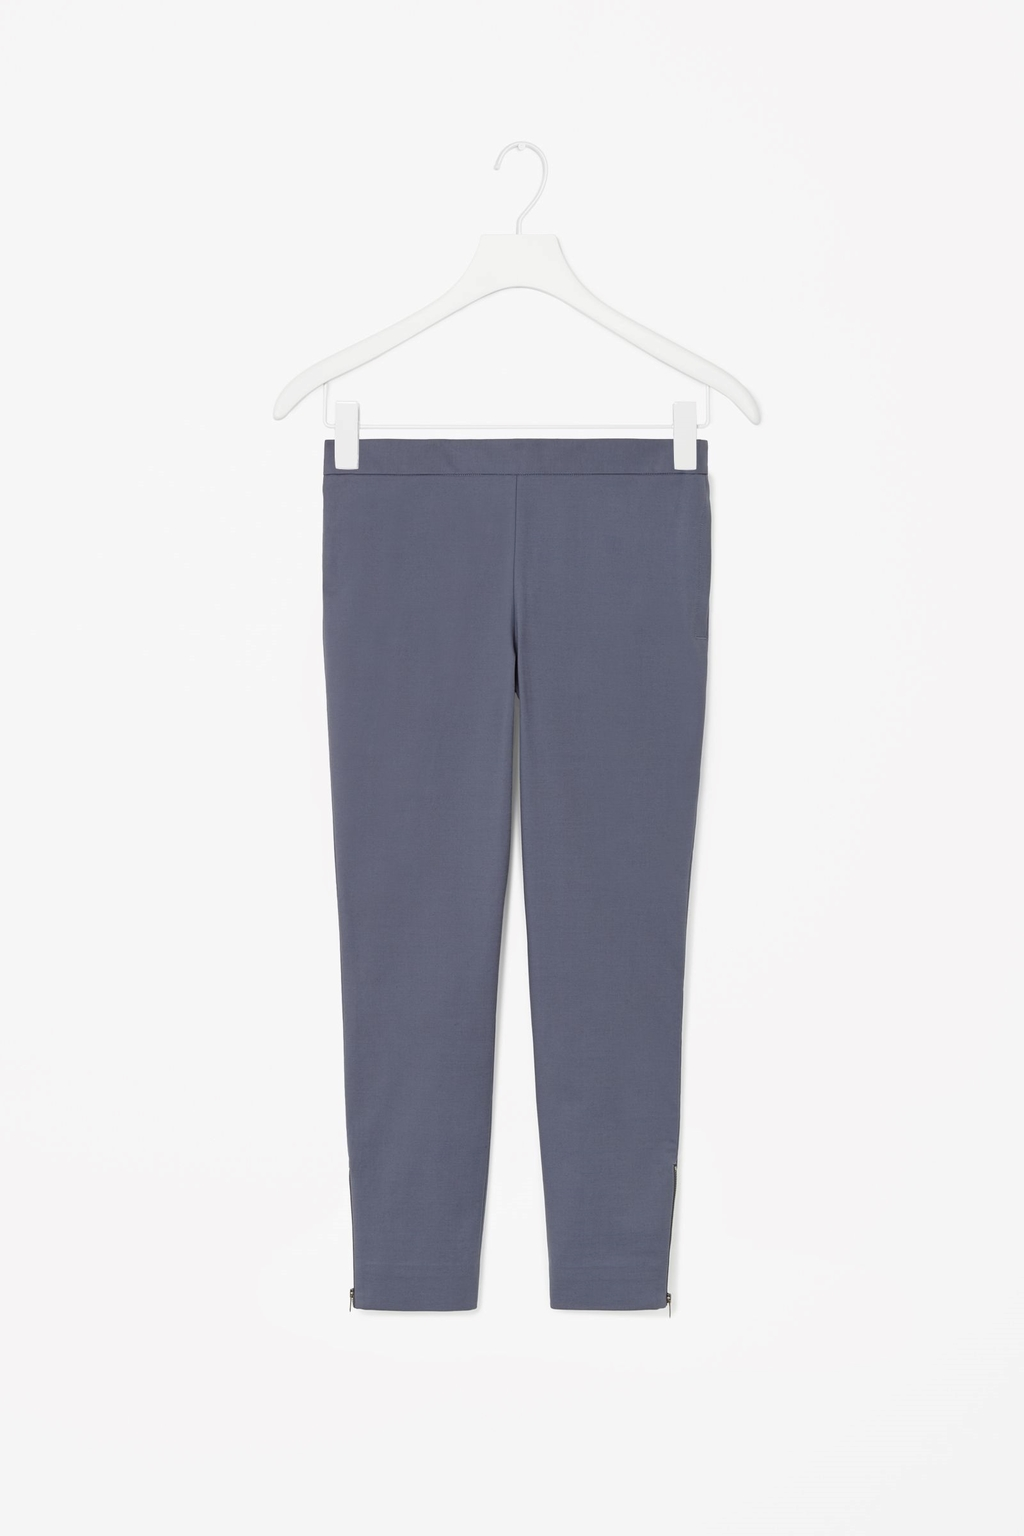 Zip Cuff Cotton Trousers - pattern: plain; style: leggings; waist: mid/regular rise; predominant colour: charcoal; occasions: casual, creative work; length: ankle length; fibres: cotton - stretch; waist detail: feature waist detail; fit: skinny/tight leg; pattern type: fabric; texture group: woven light midweight; season: s/s 2015; wardrobe: basic